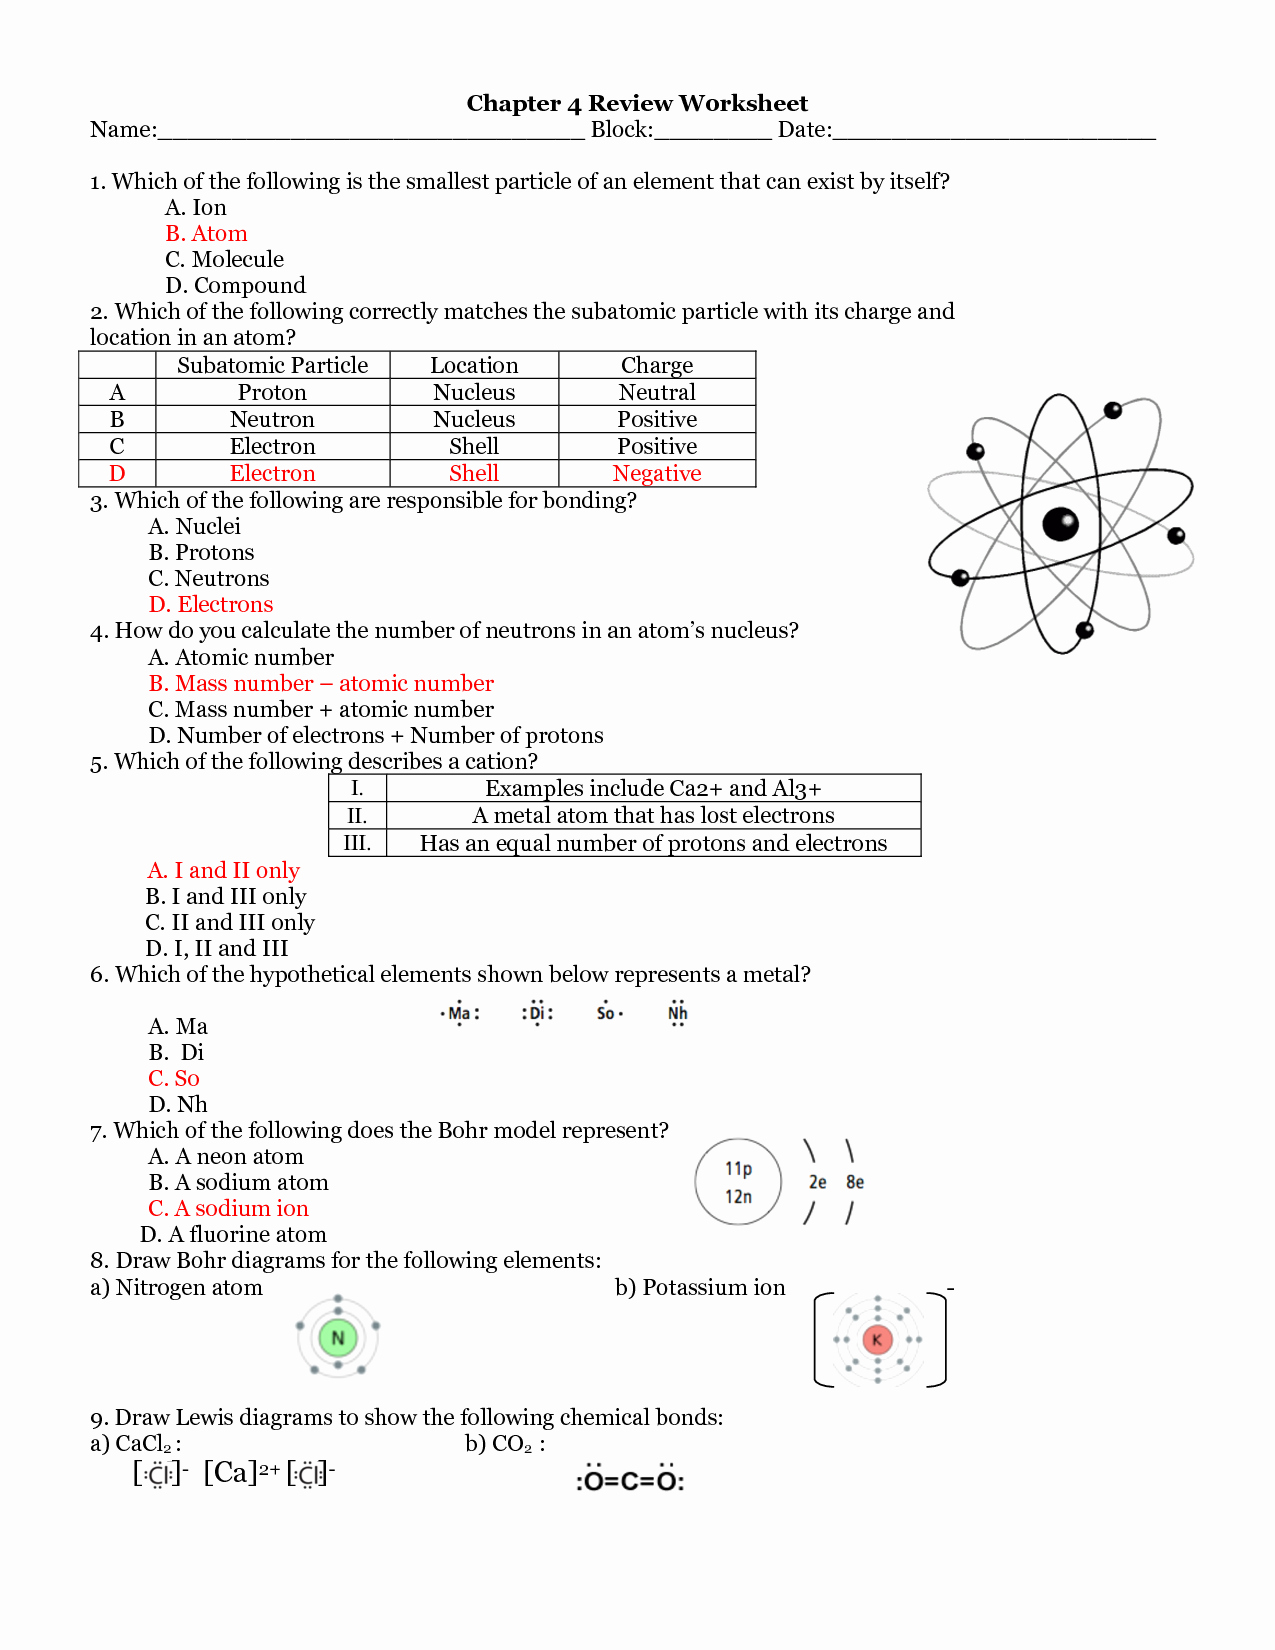 Ions and isotopes Worksheet Unique 16 Best Of Molecules and atoms Worksheet Answer Key